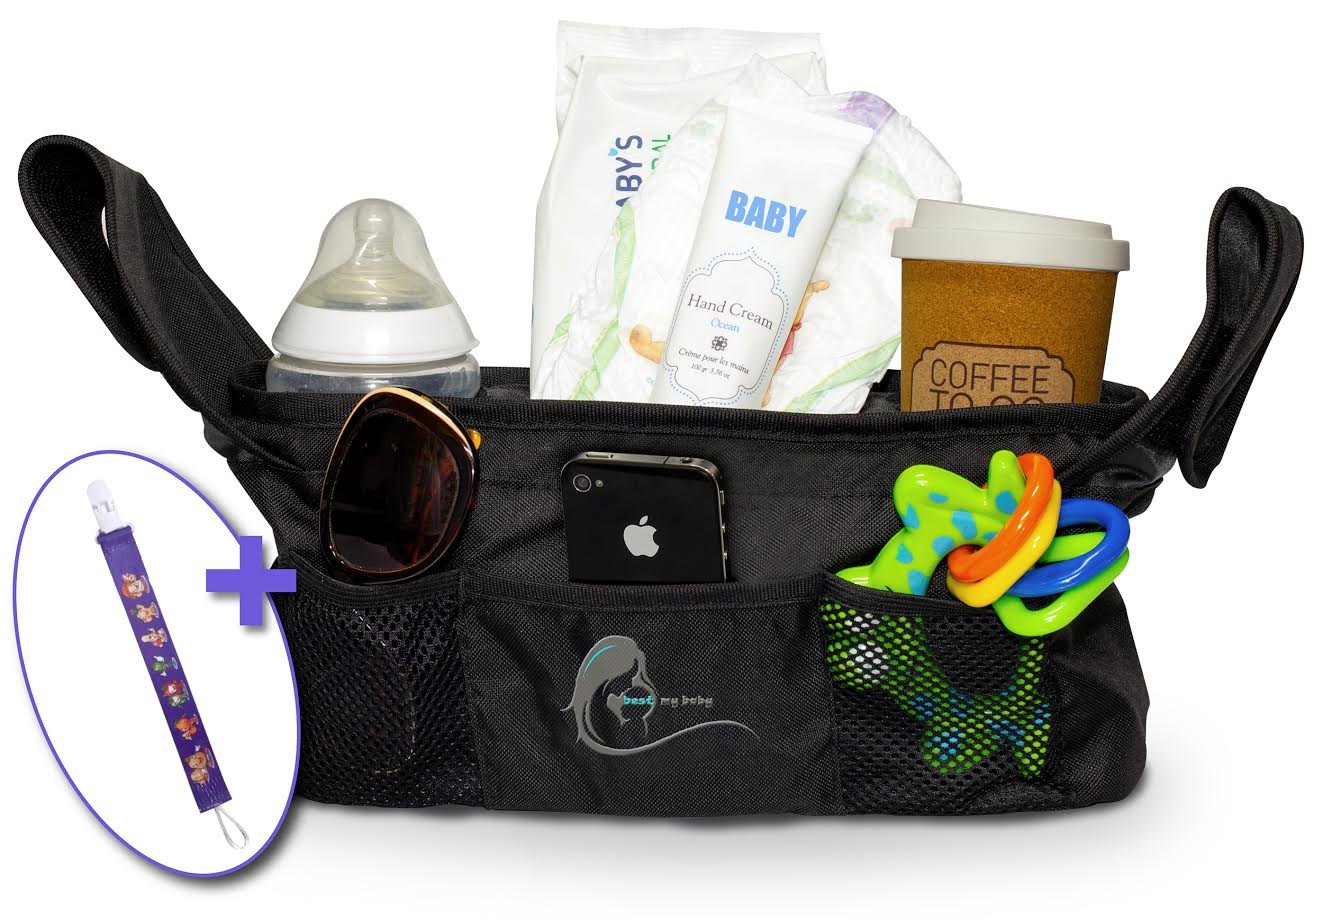 785ef01ba8cf Stroller Organizer Bag, Extra Storage, Universal- Best Quality, Bag for  Diapers & Accessories - Includes...